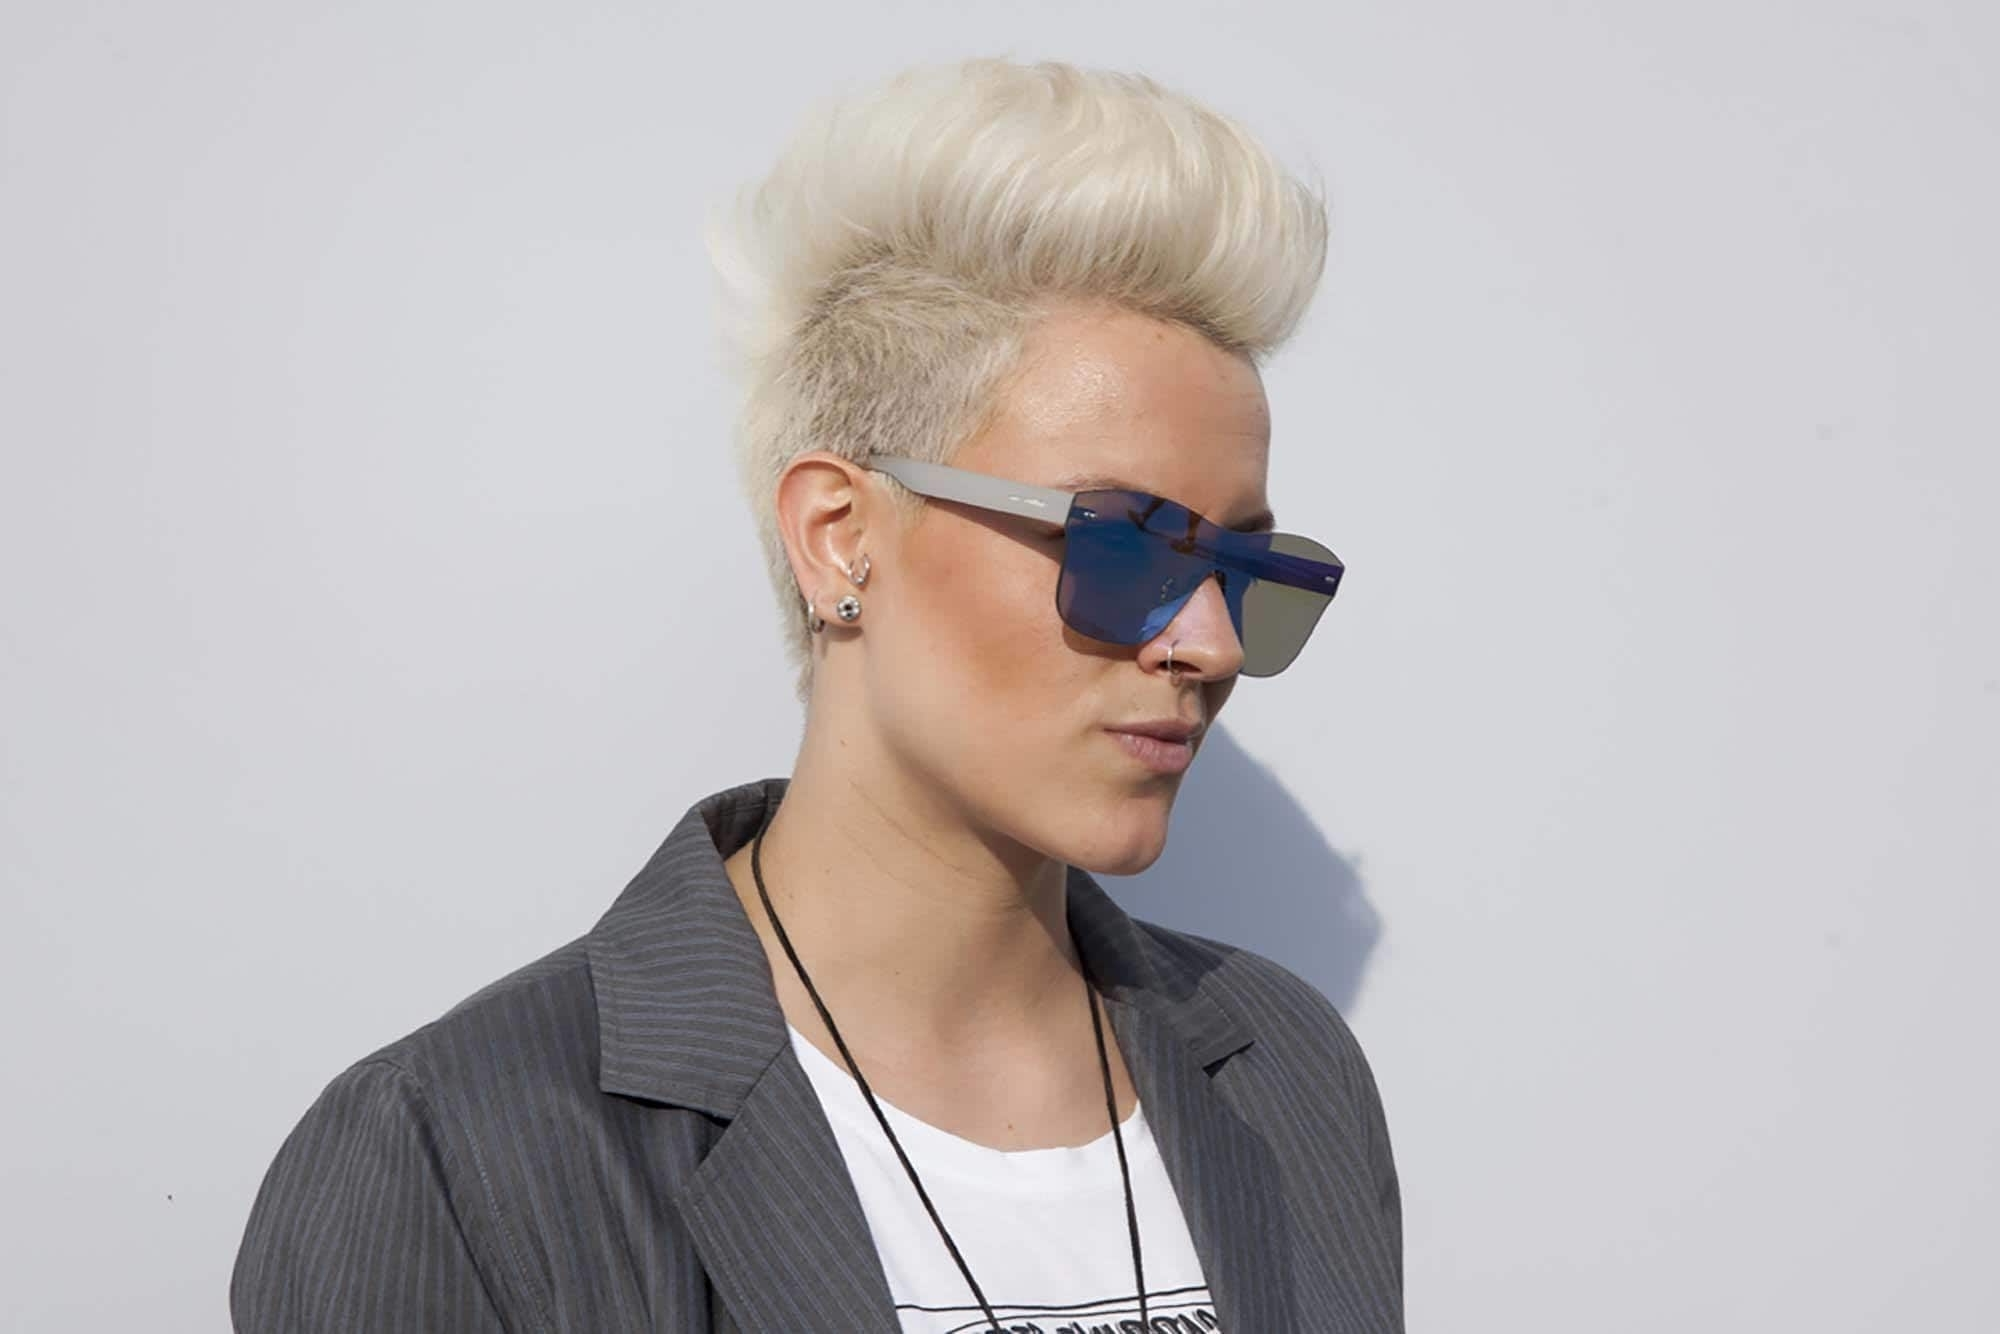 Gallery Of Spiked Blonde Mohawk Haircuts View 7 Of 15 Photos